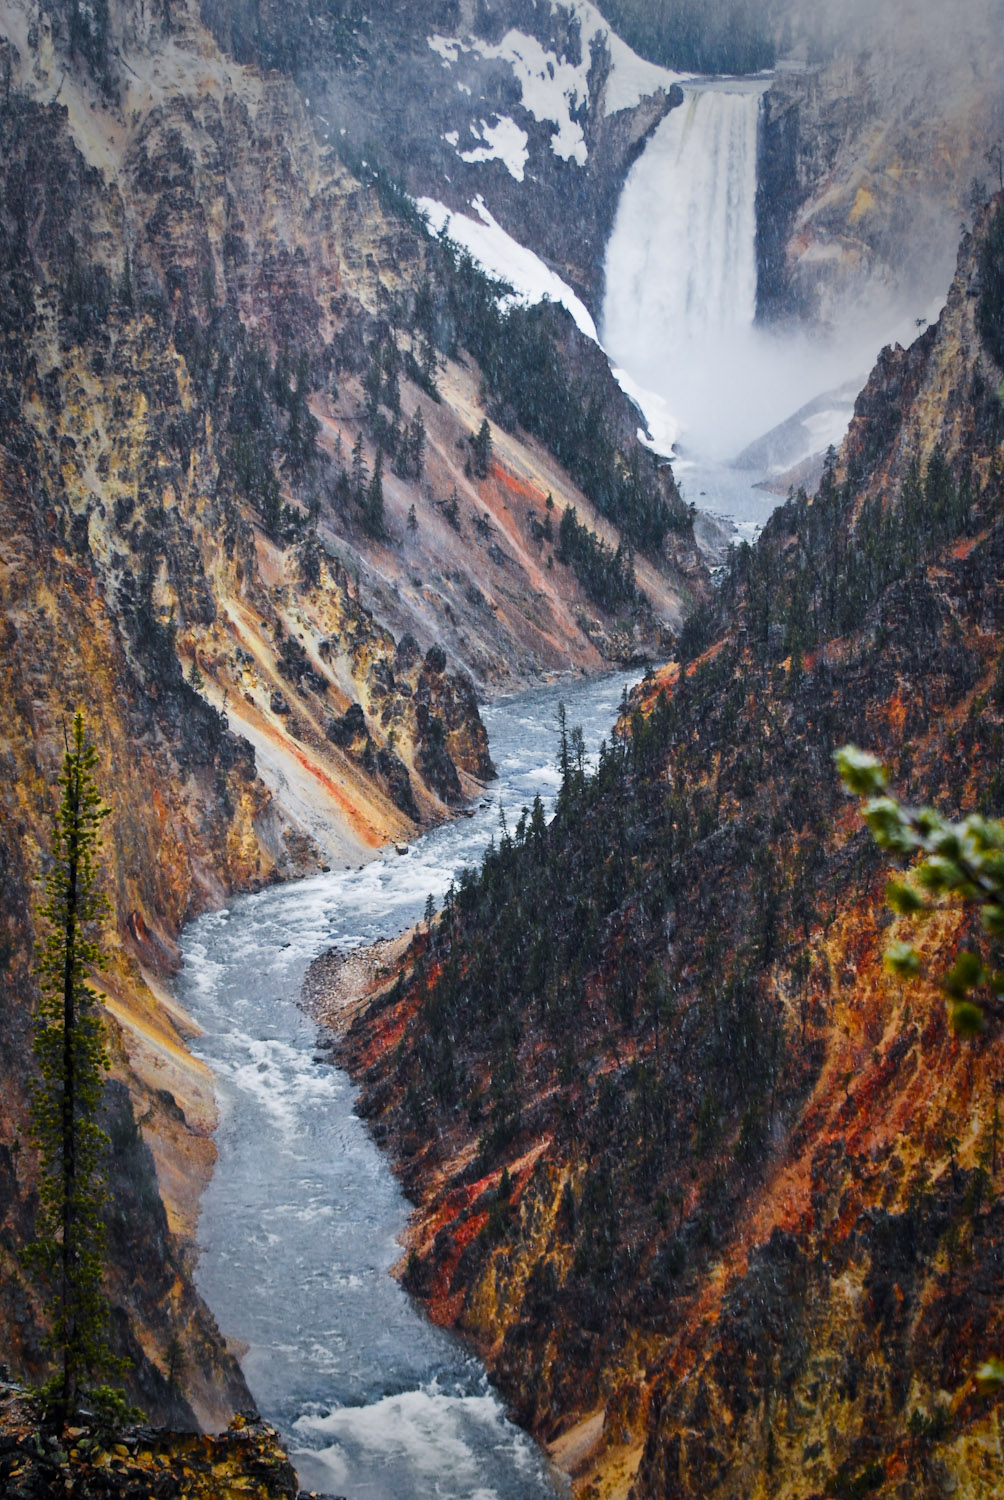 Grand Canyon of the Yellowstone during a rainstorm